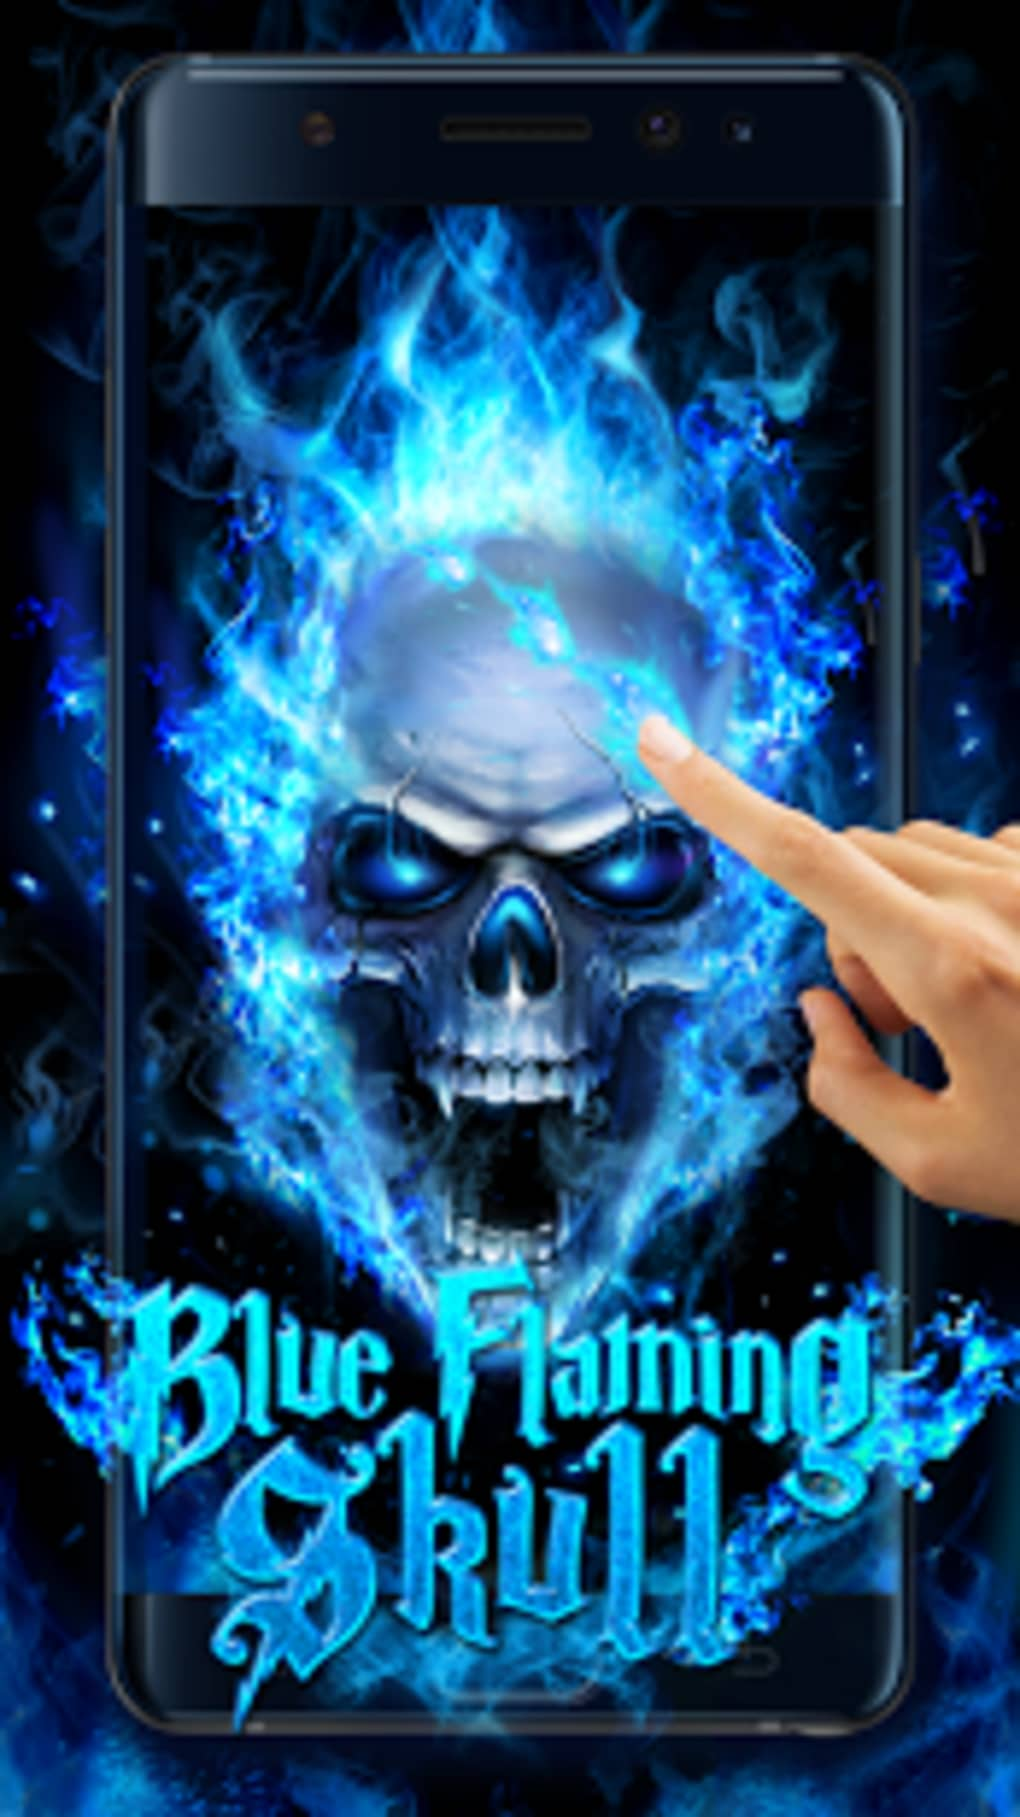 Blue Fire Skull Live Wallpaper Apk For Android Download